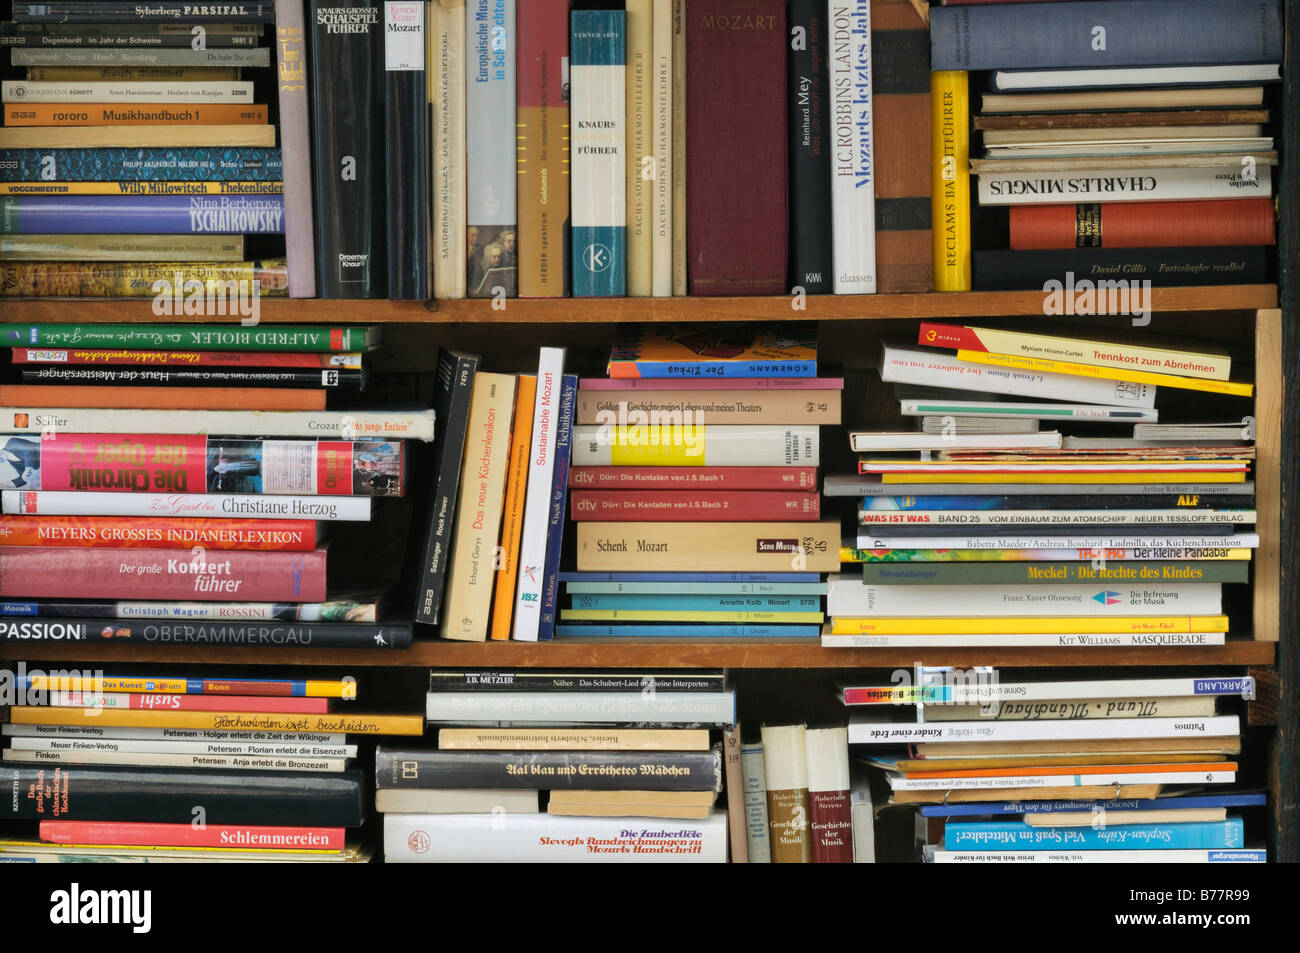 Variegated range in an antiquarian book shop, narrow book spines - Stock Image